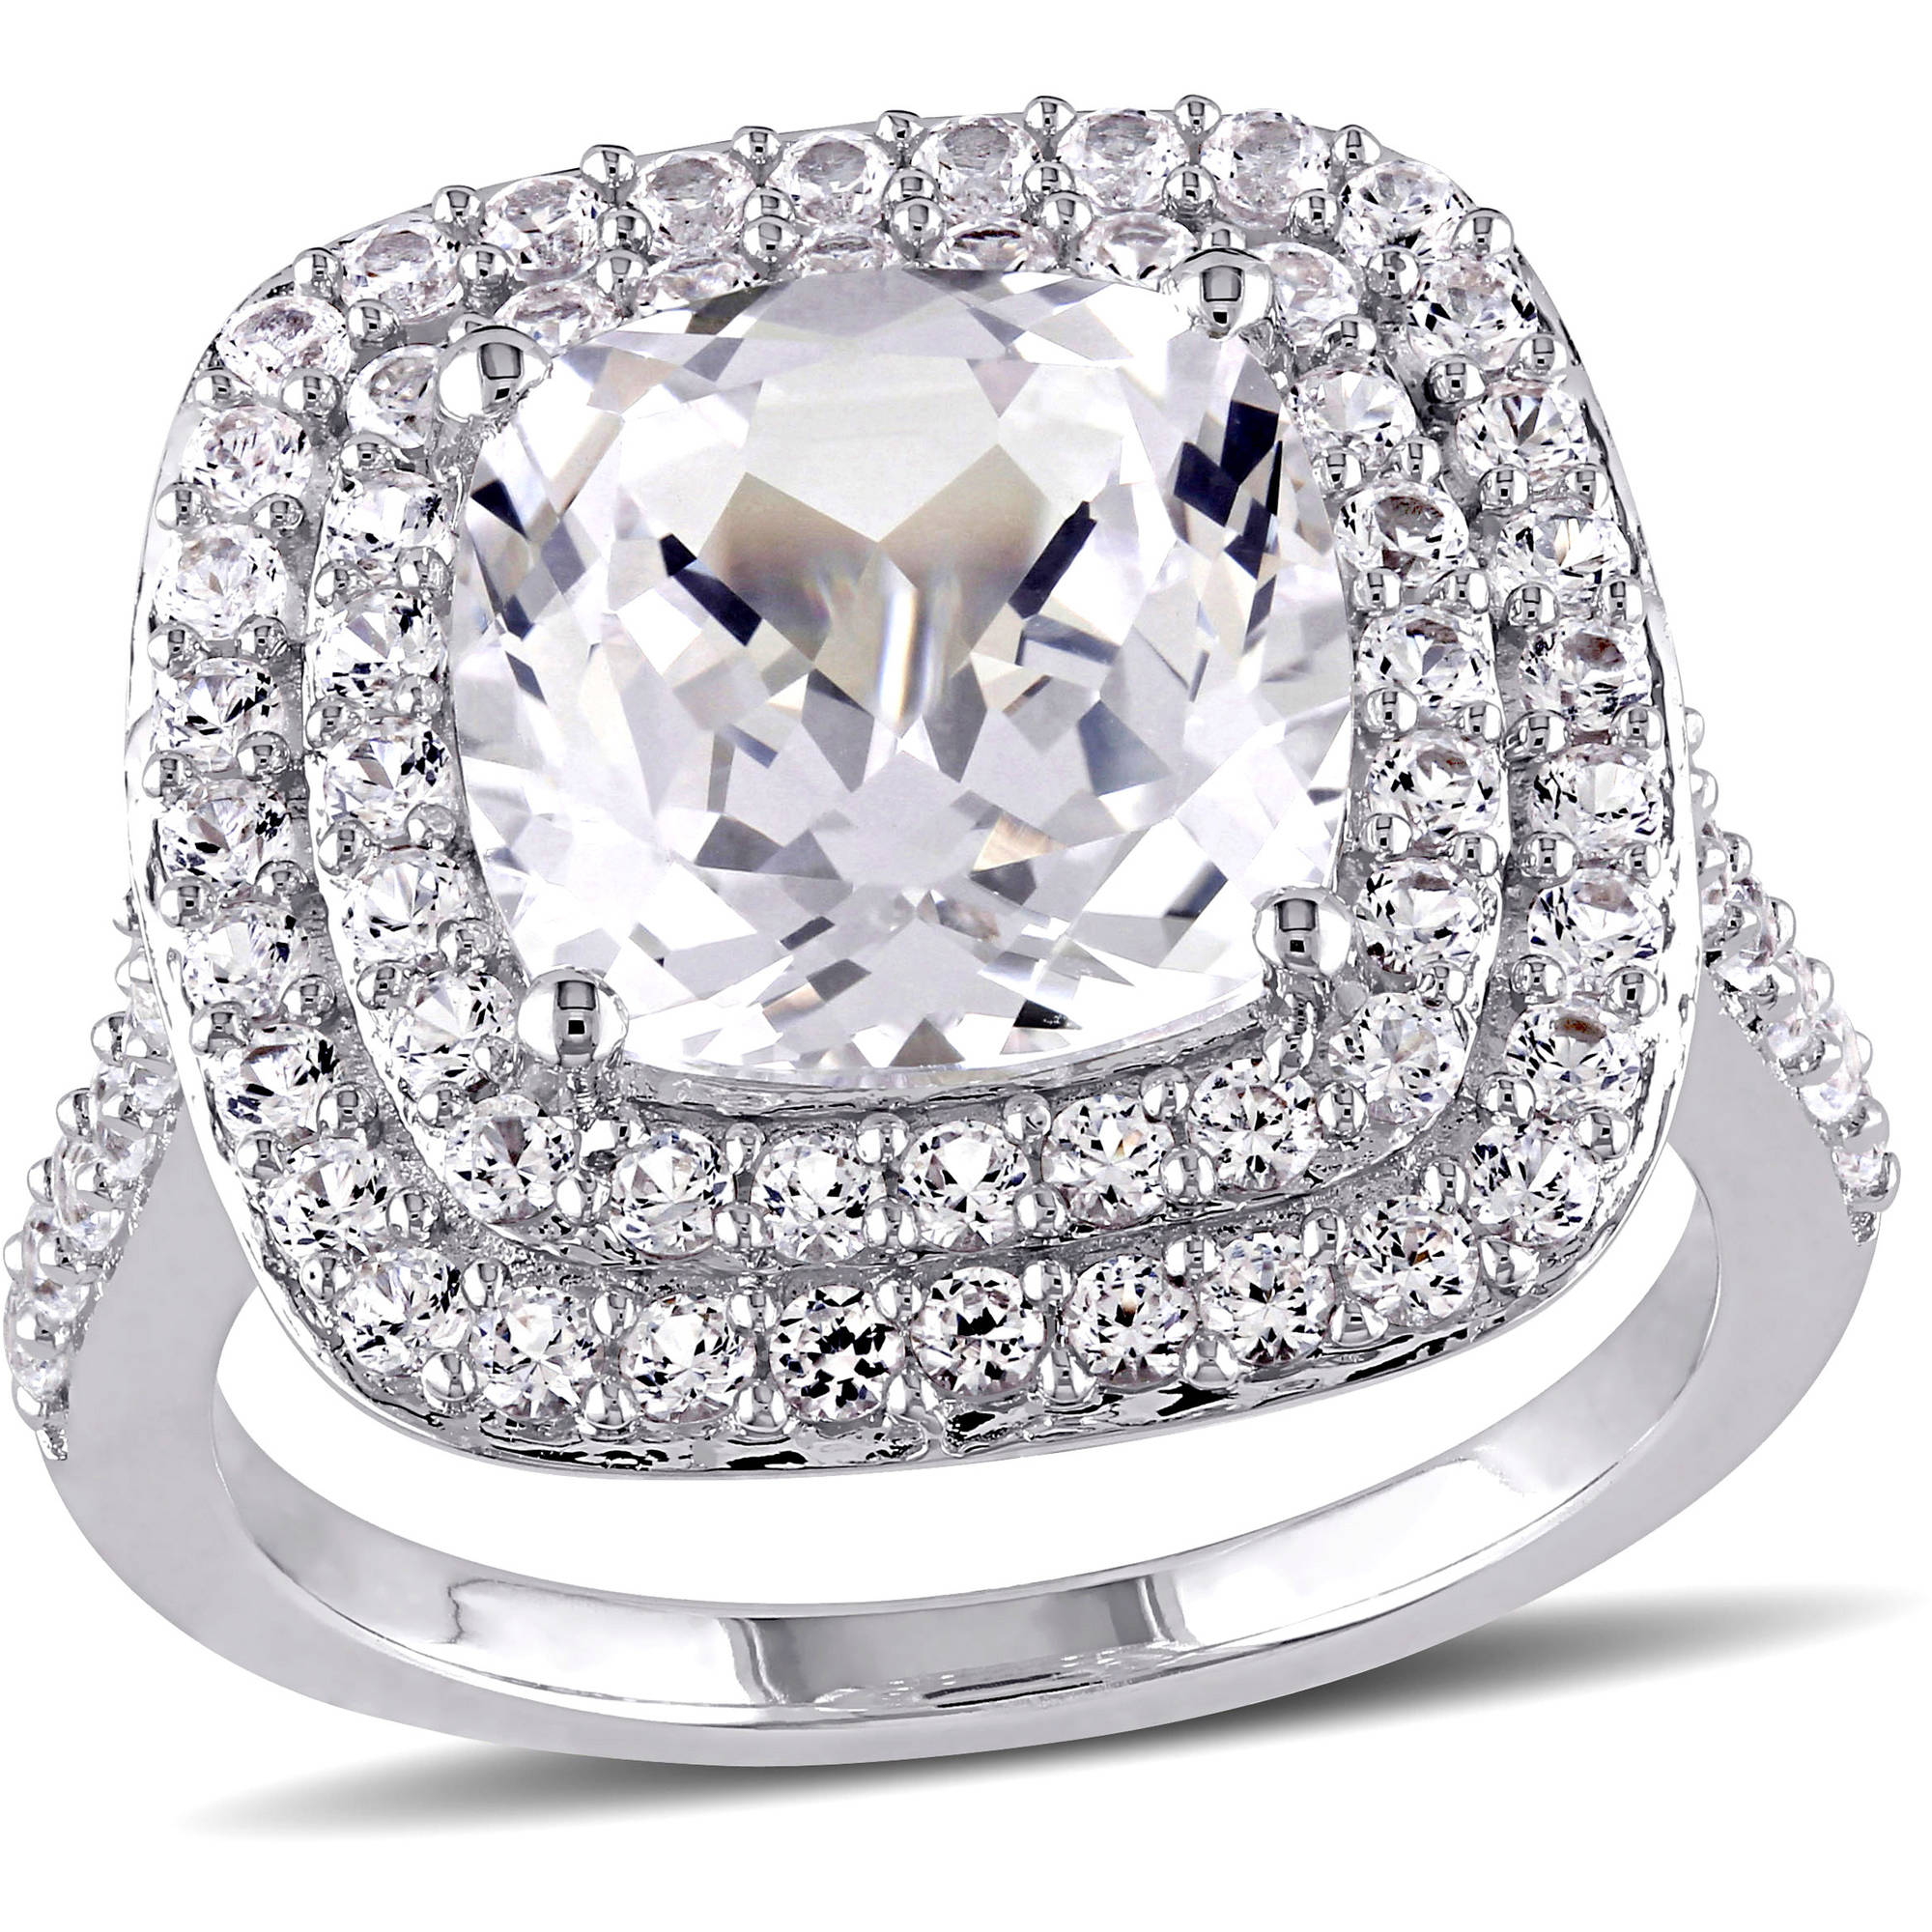 Miabella 7-1/10 Carat T.G.W. Created White Sapphire Sterling Silver Halo Engagement Ring